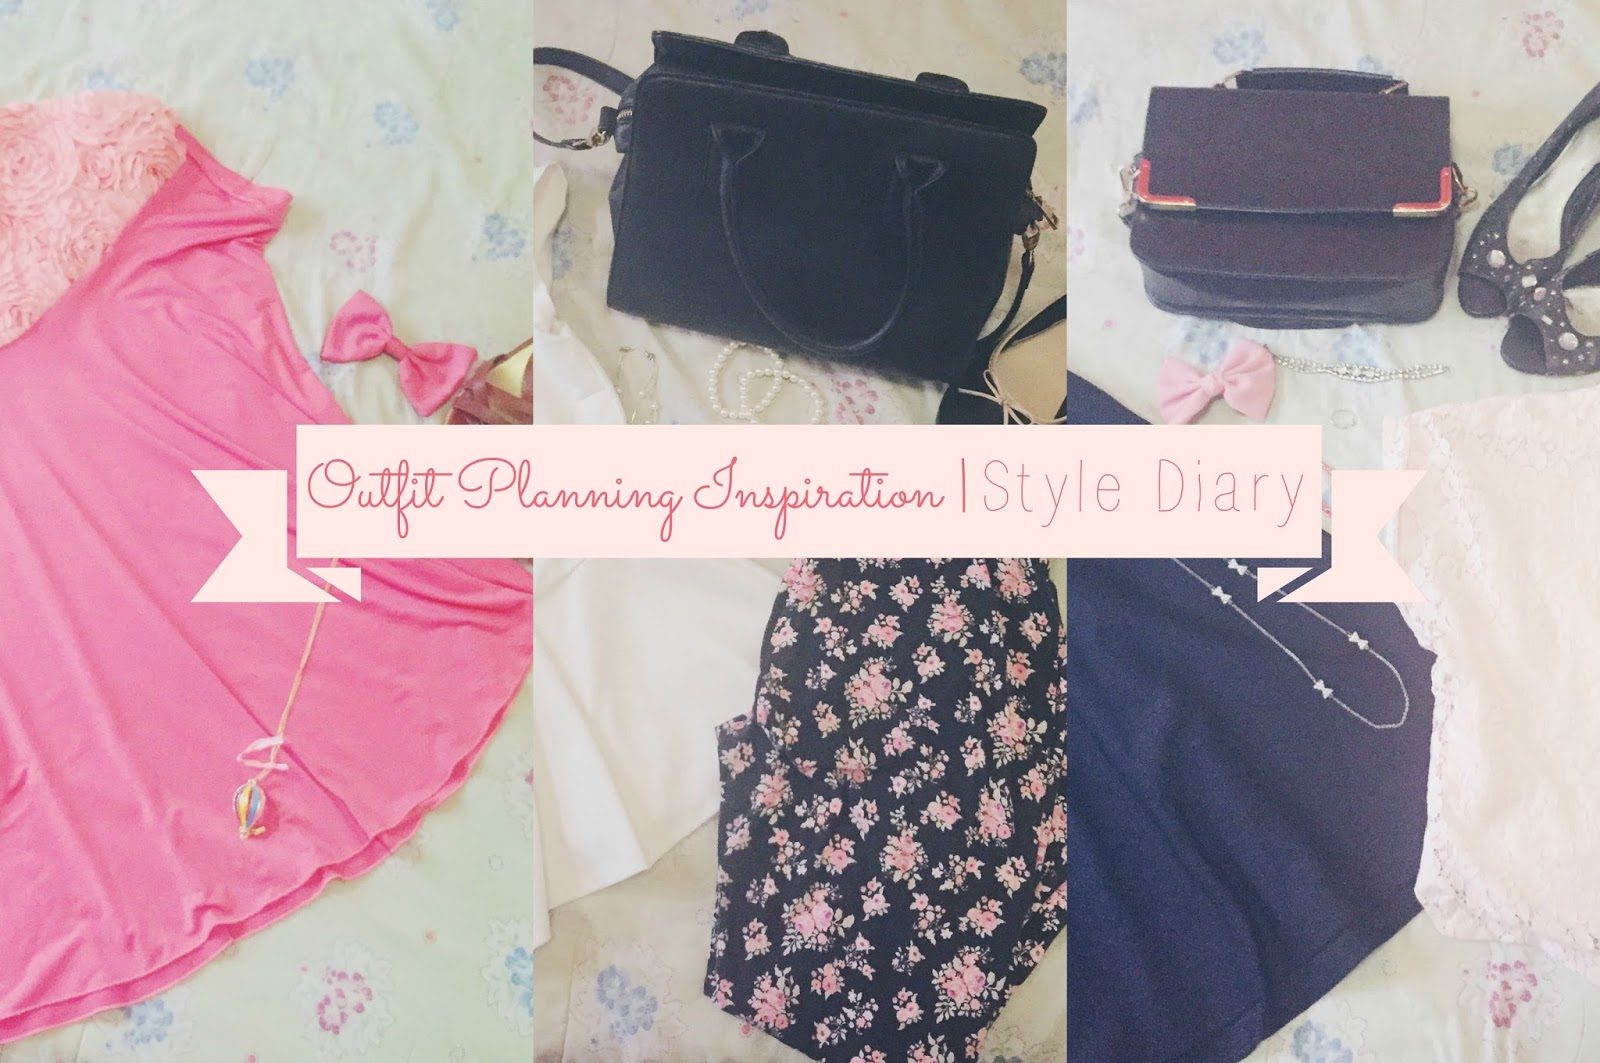 Outfit Planning Inspiration | Style Diary